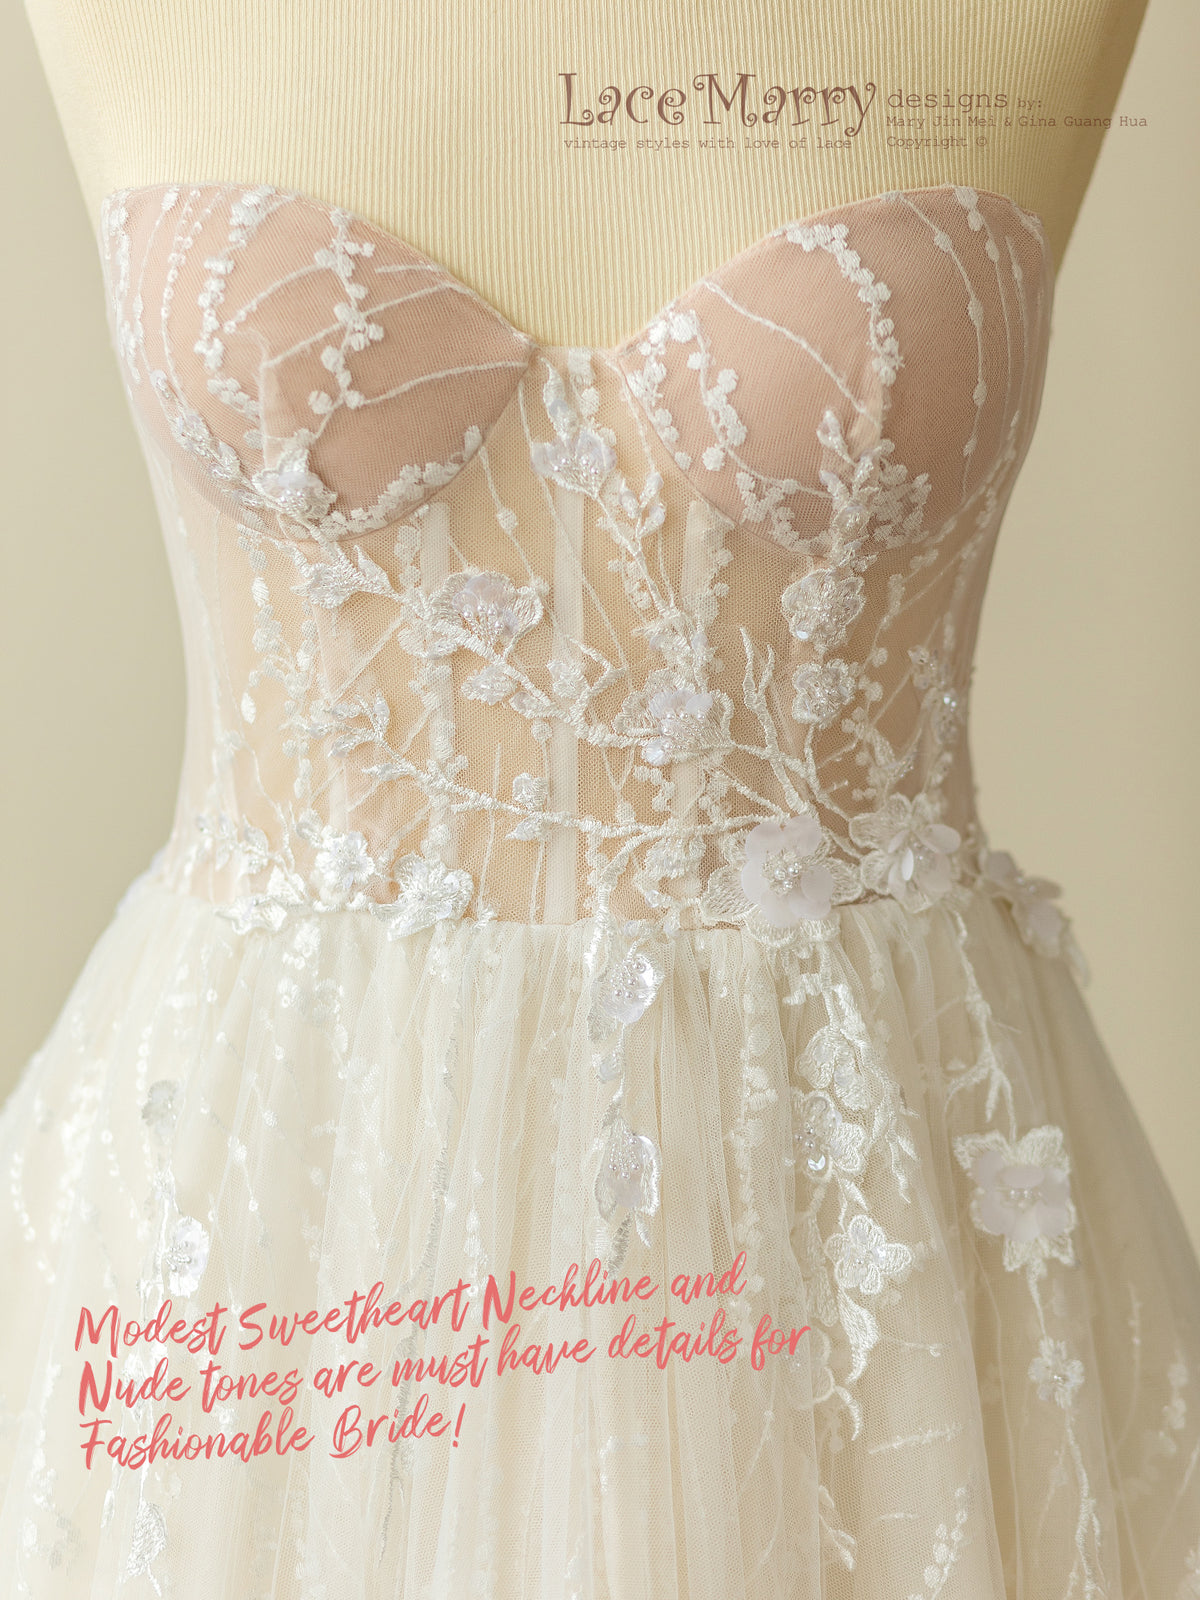 Lace Wedding Dress with Bustier Top